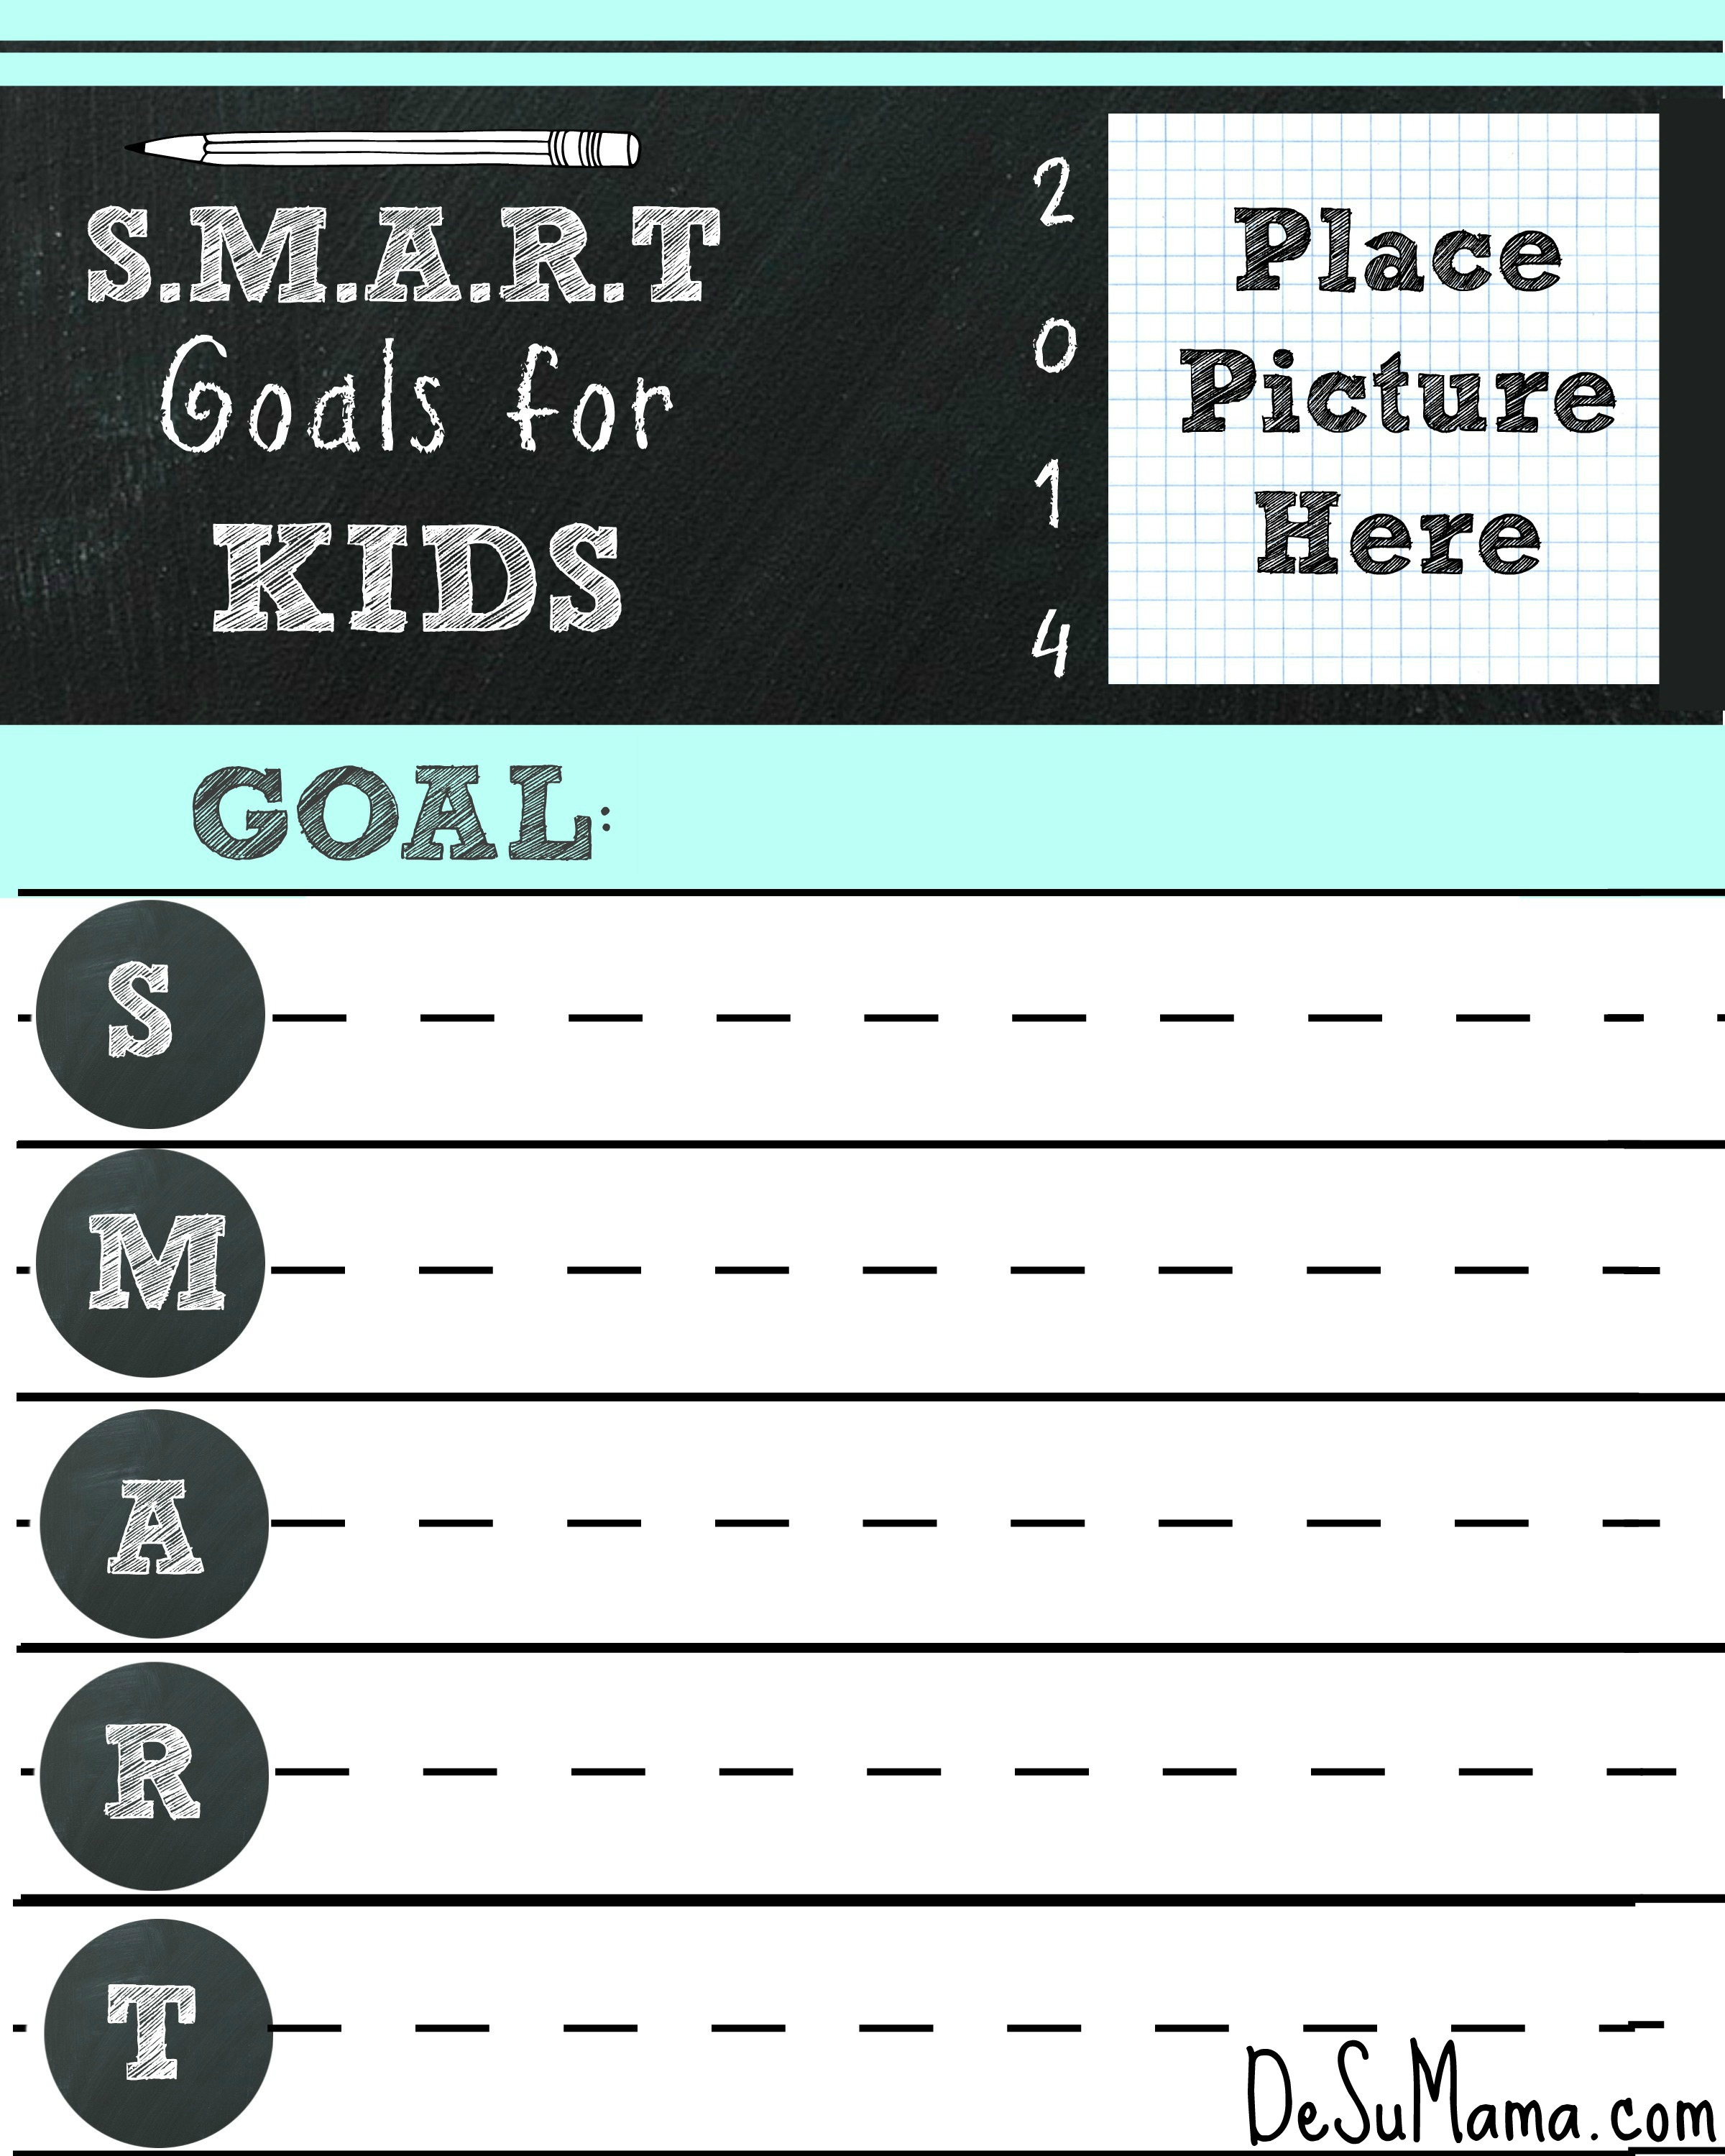 new years goal setting for kids the smart way de su mama click here for your new years goal setting for kids